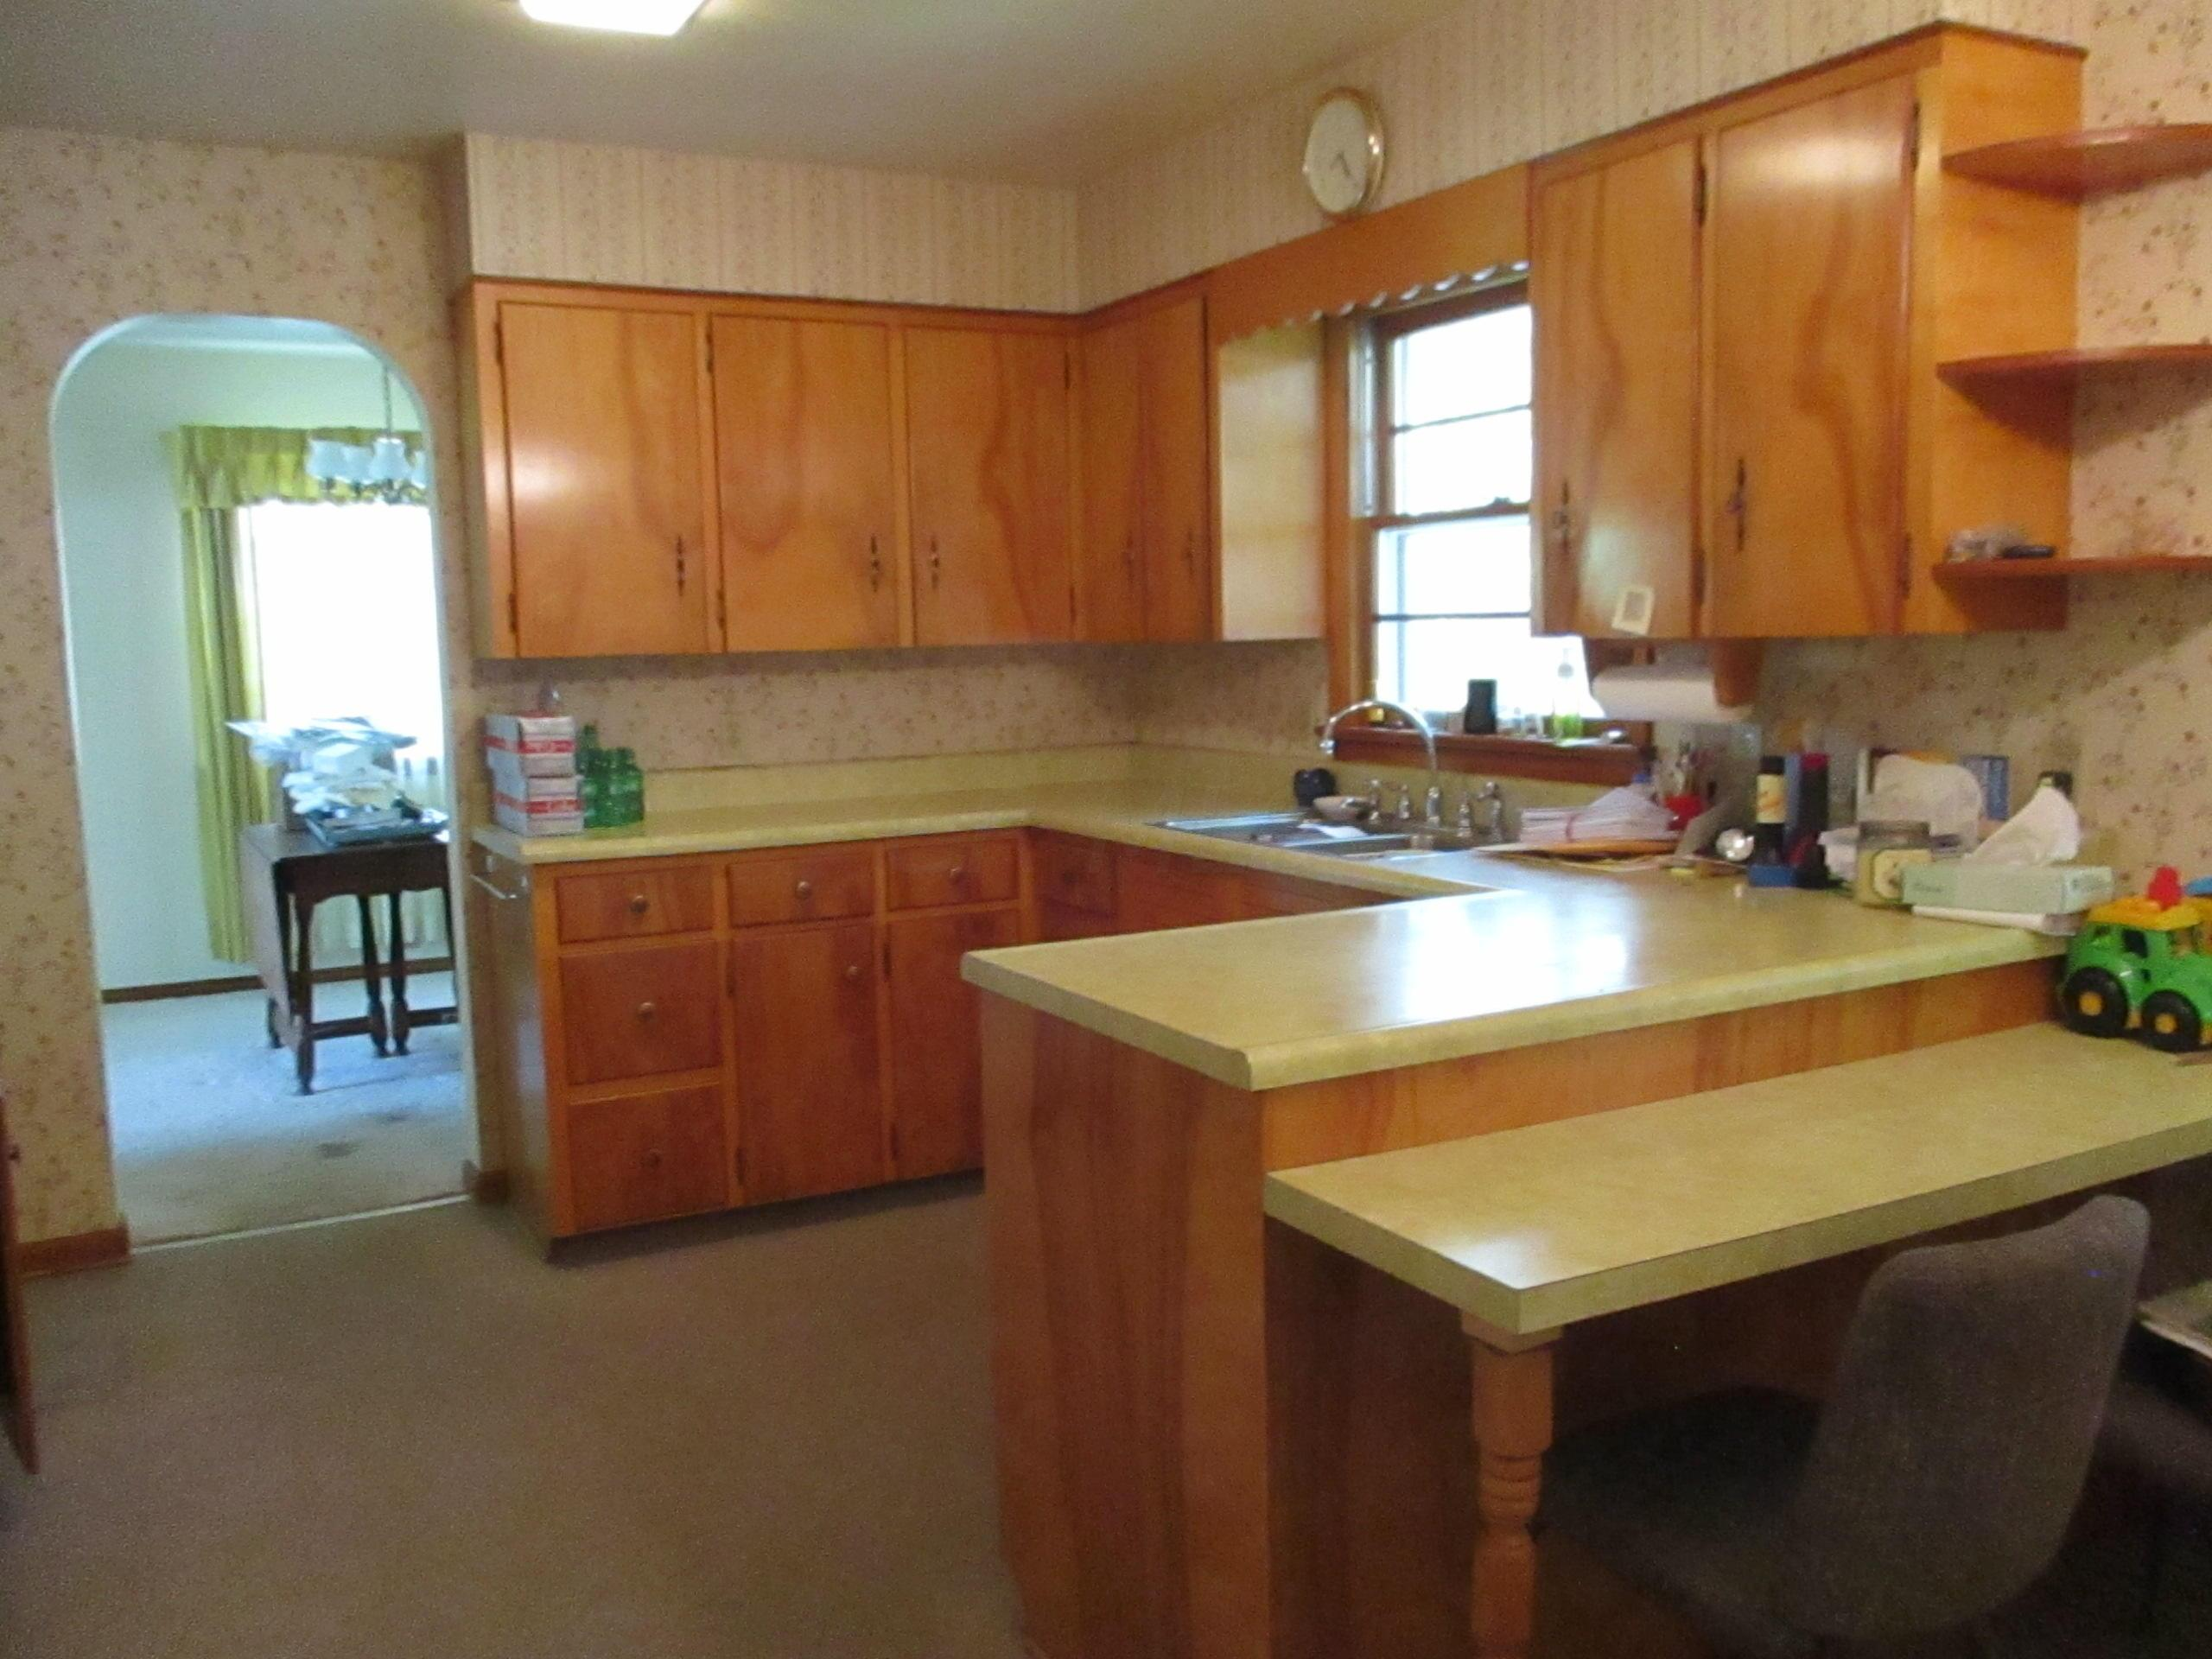 578 W Marion St  - 7665 CR 201 020